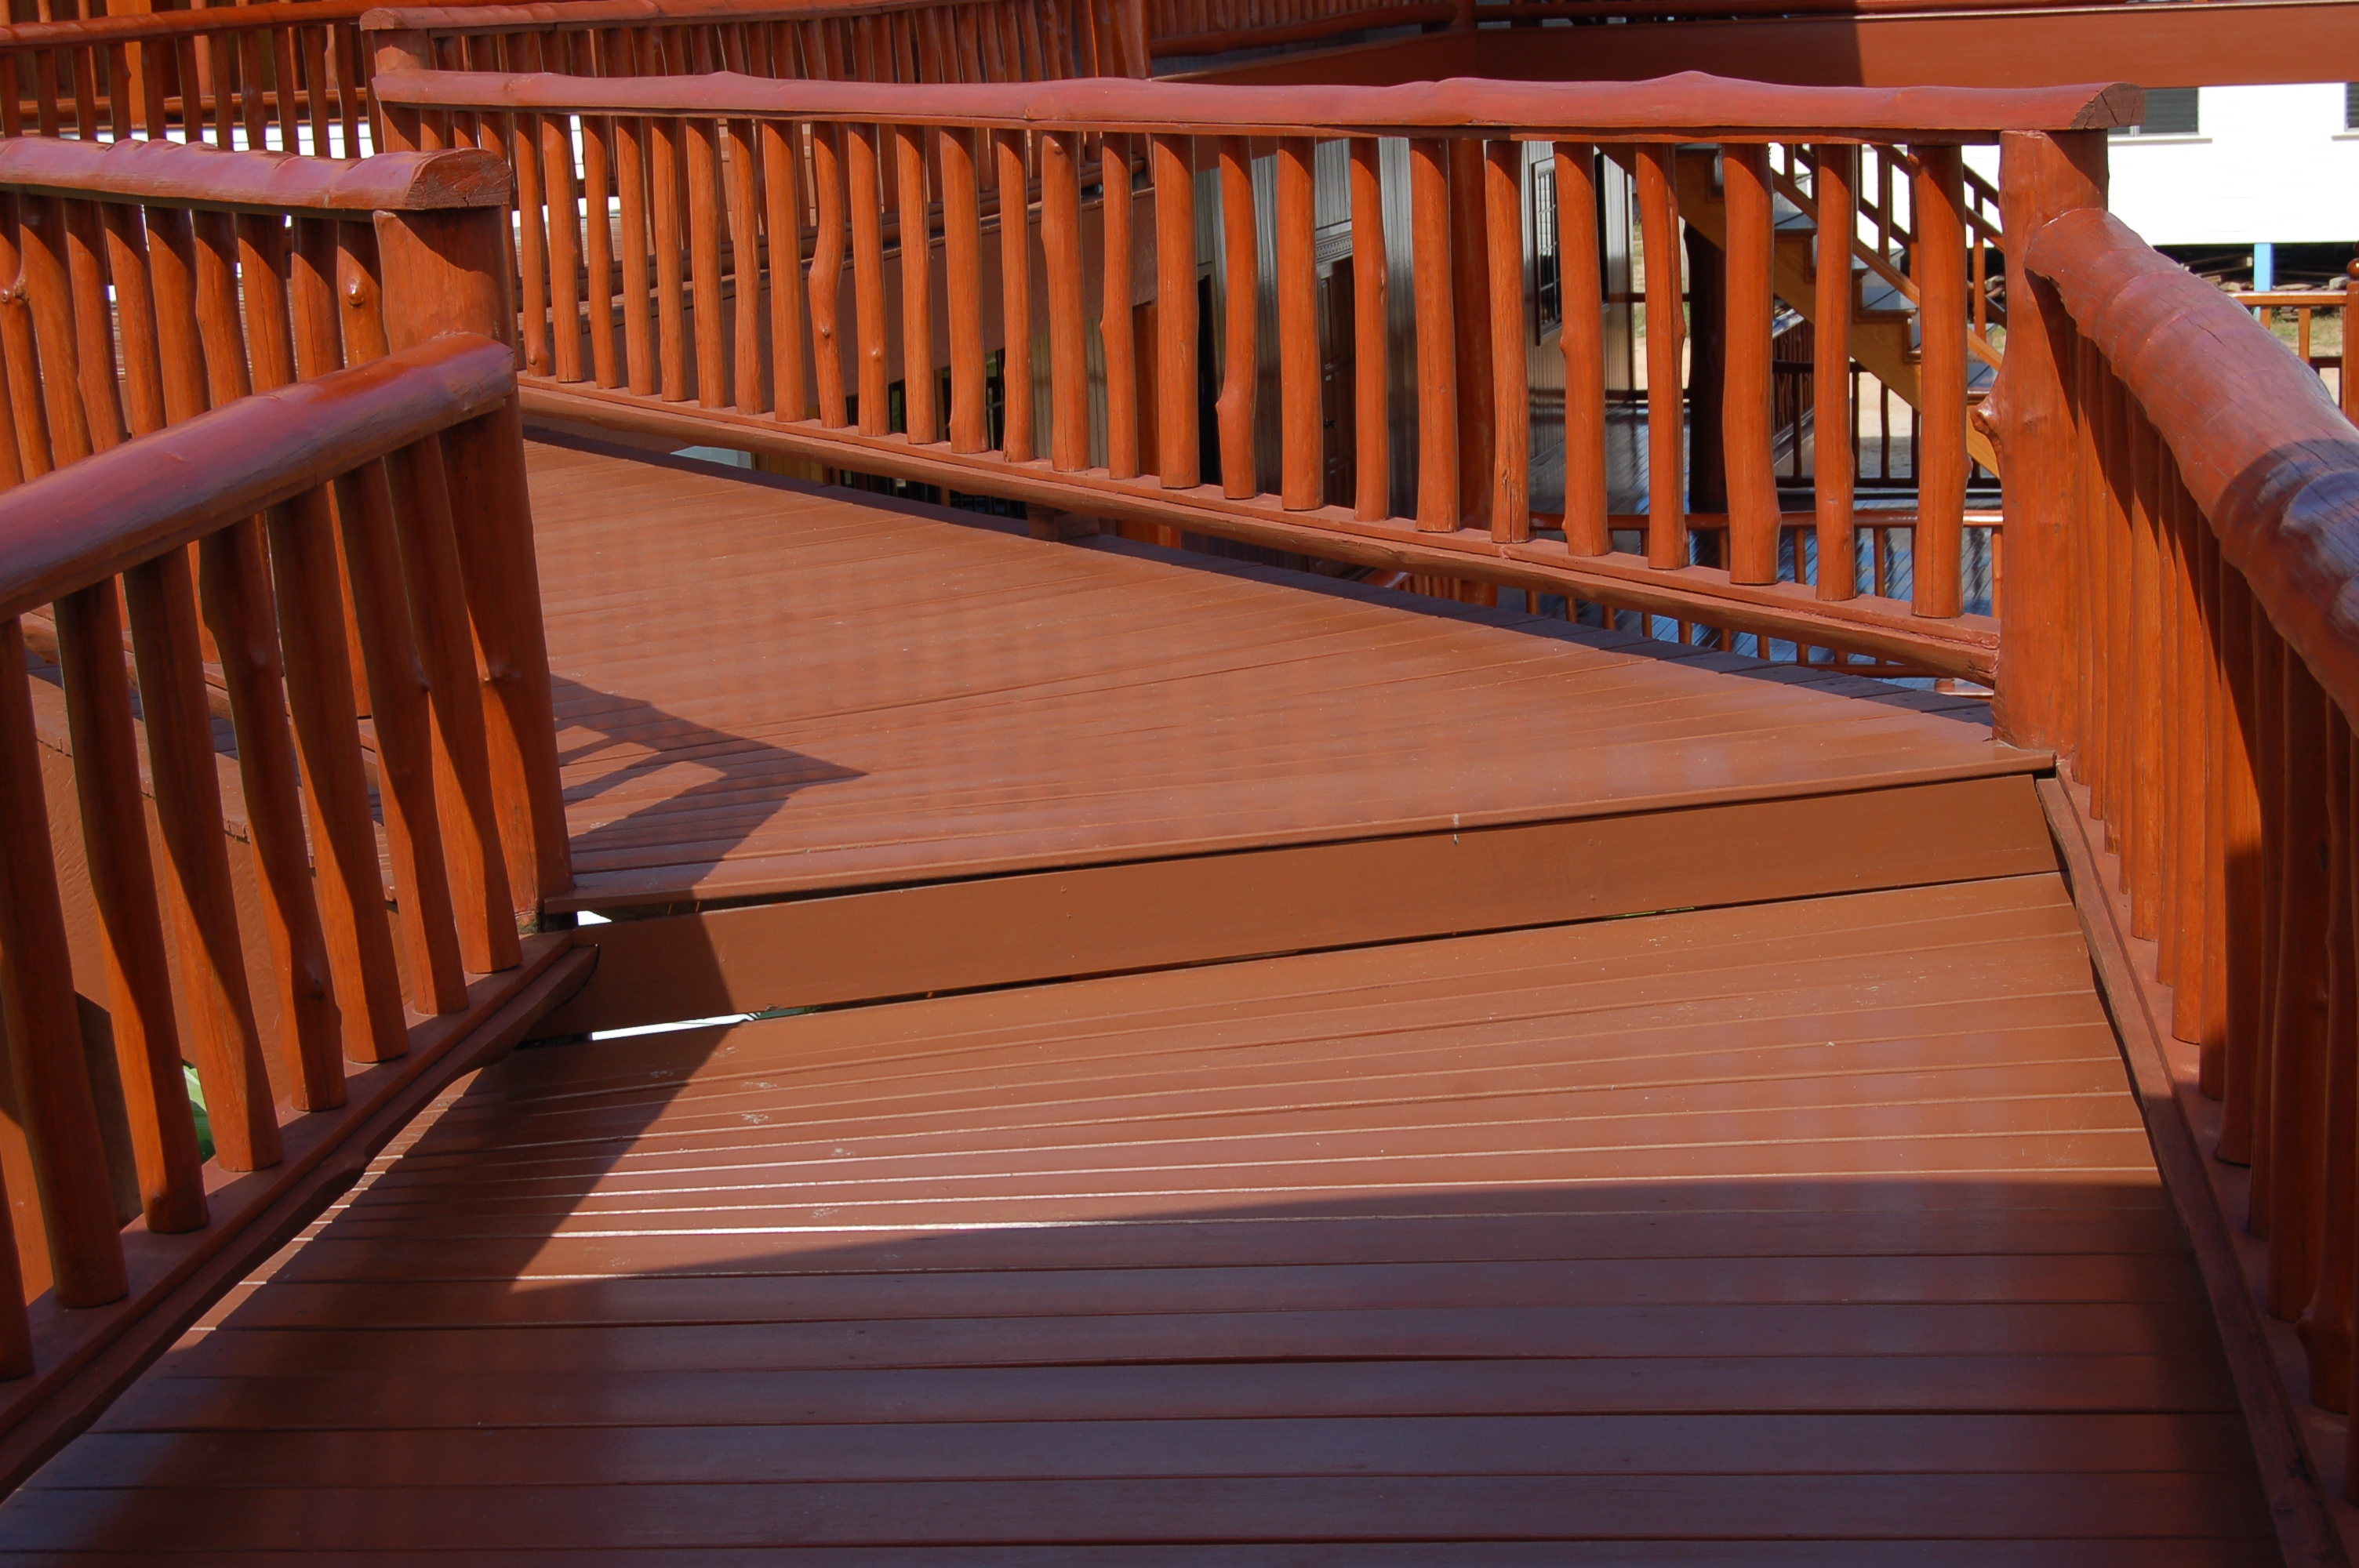 Guyana's Greenheart, one of the main marketed species, used in Outdoor Decking Application